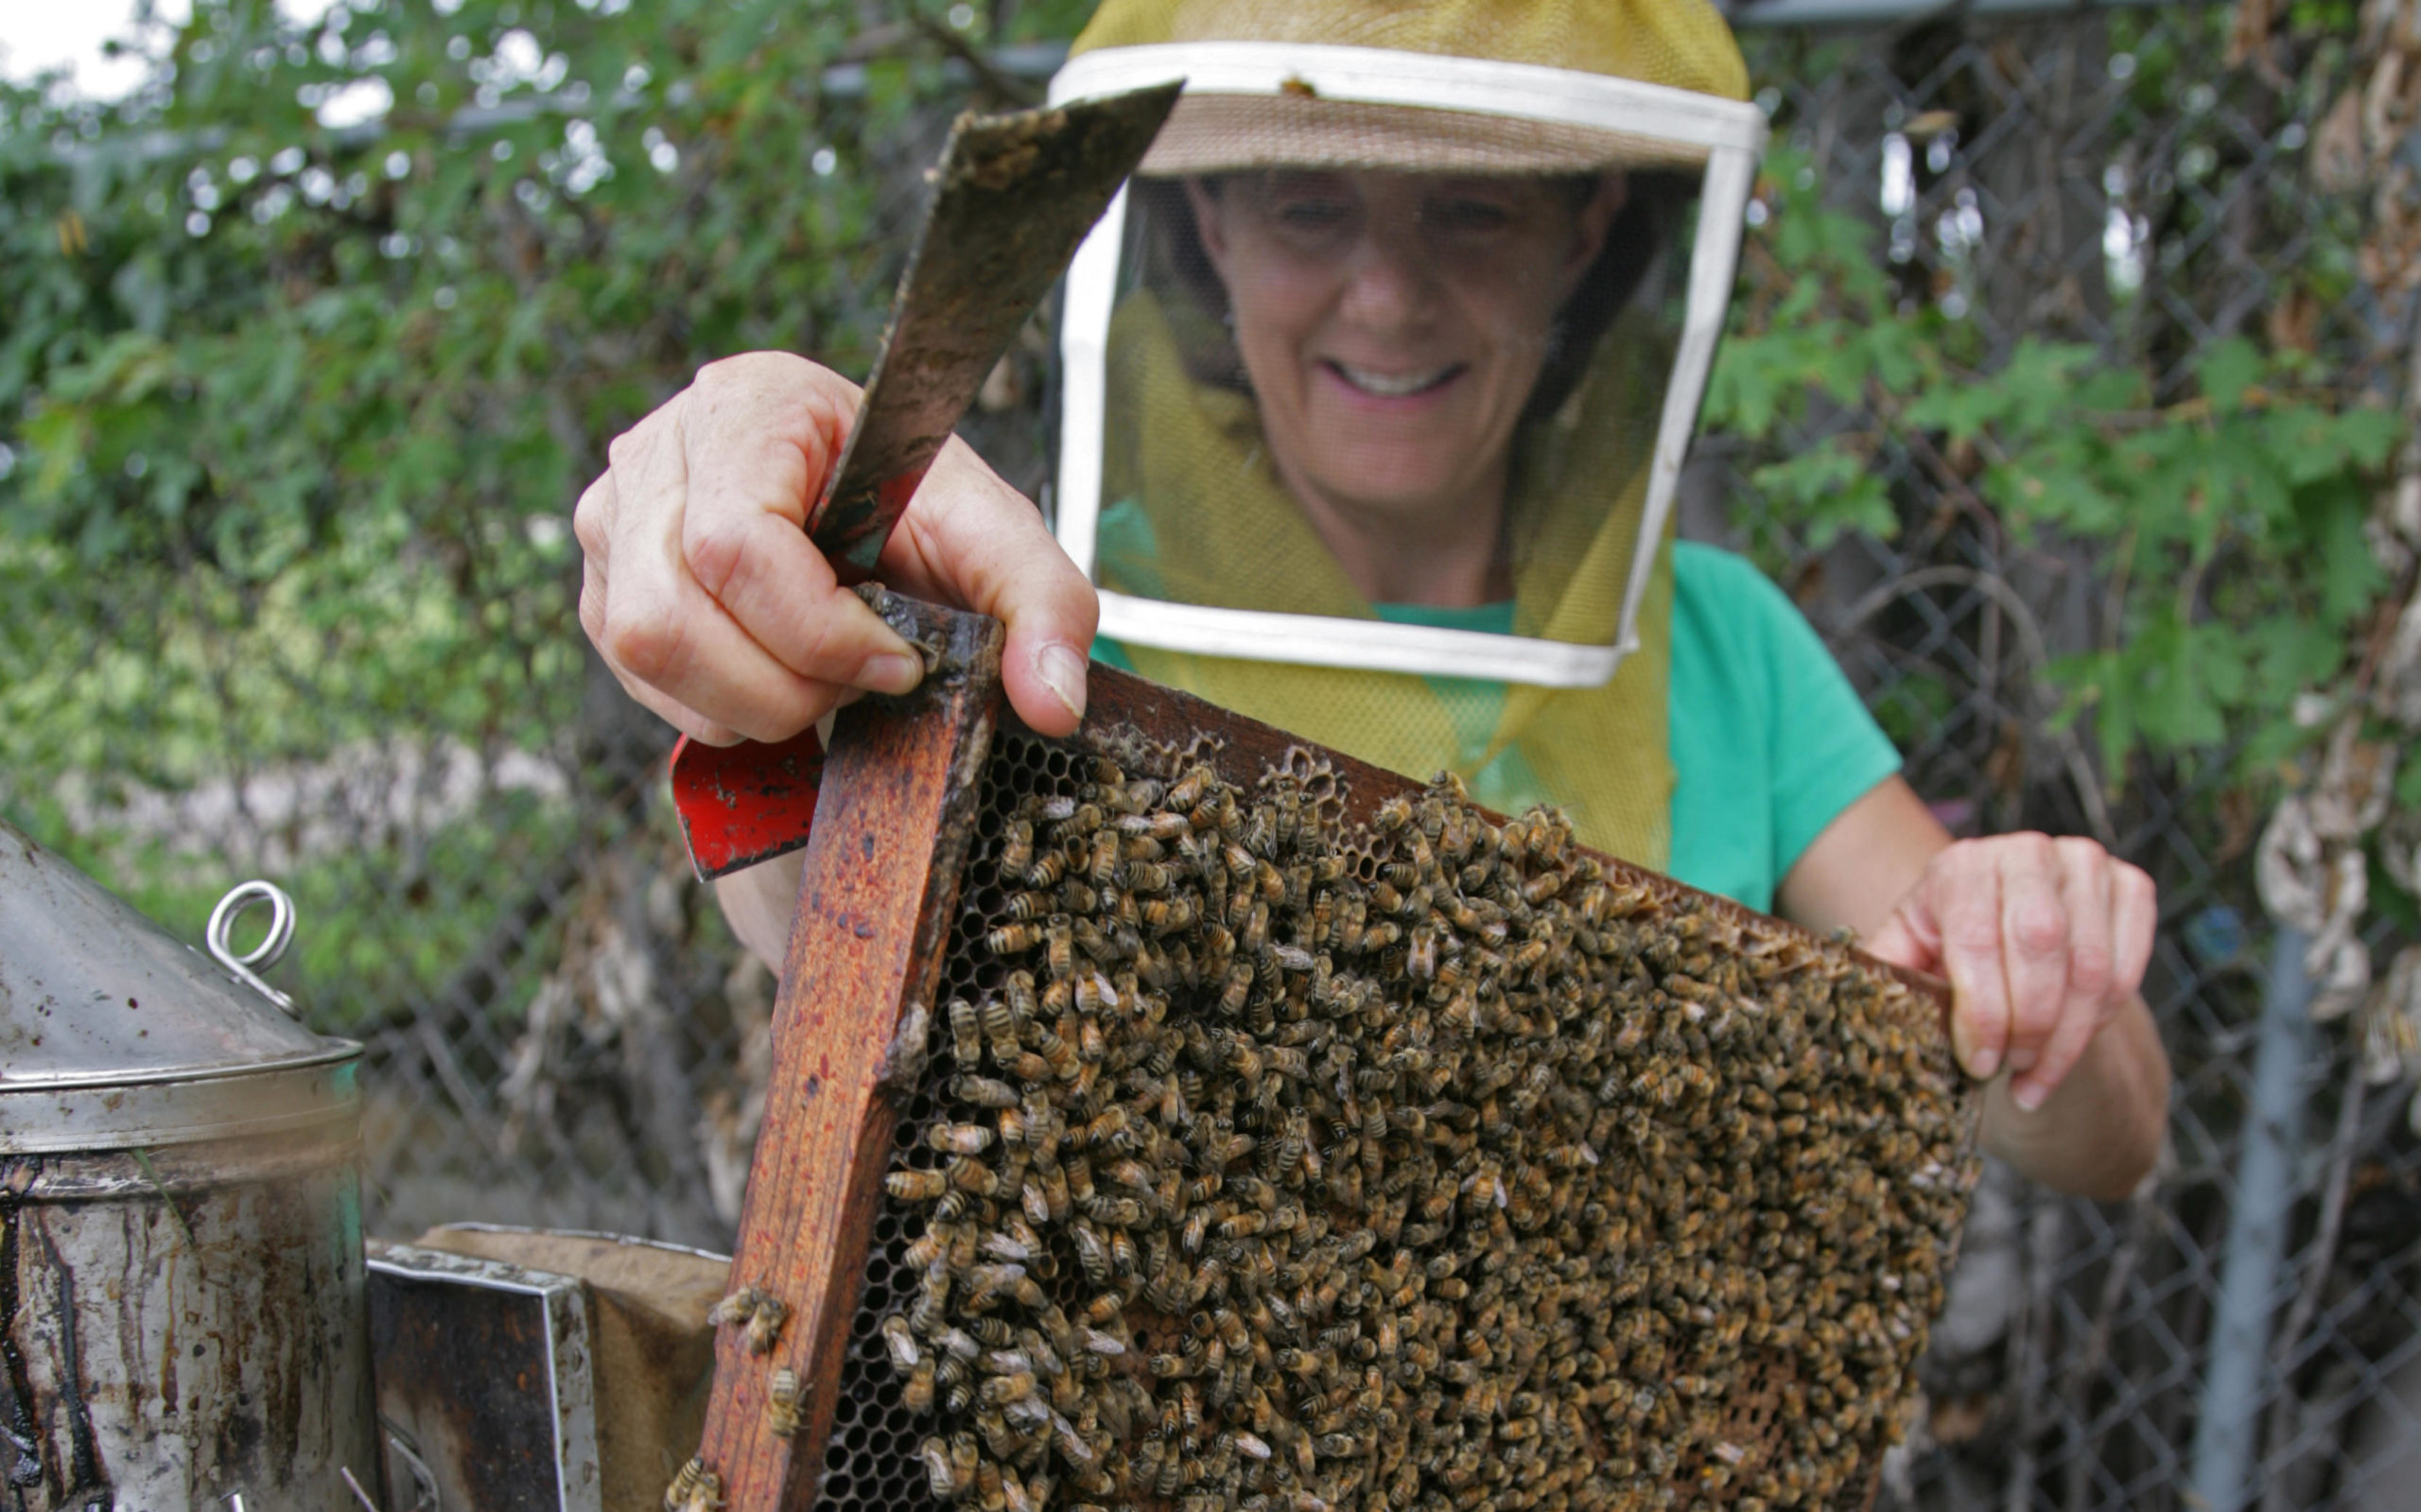 Marla Spivak opening a bee box.